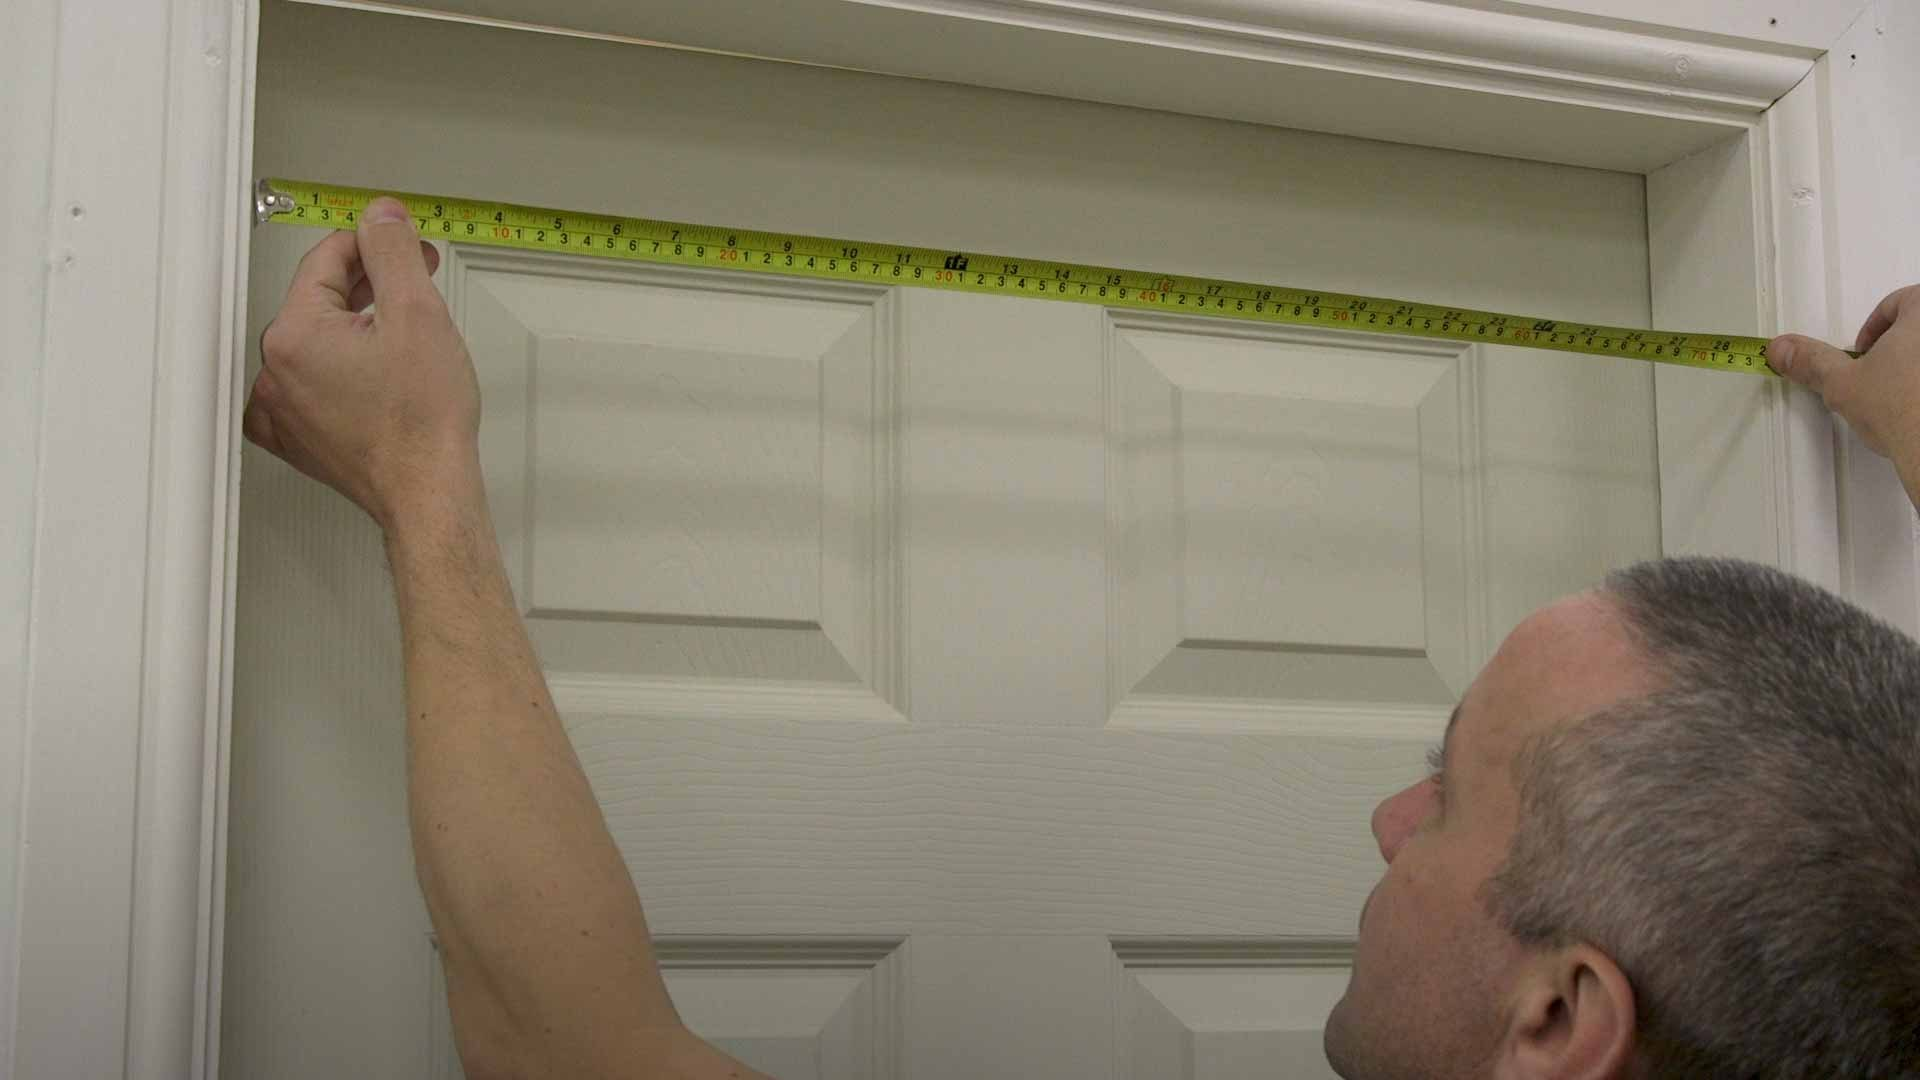 Measure doorways